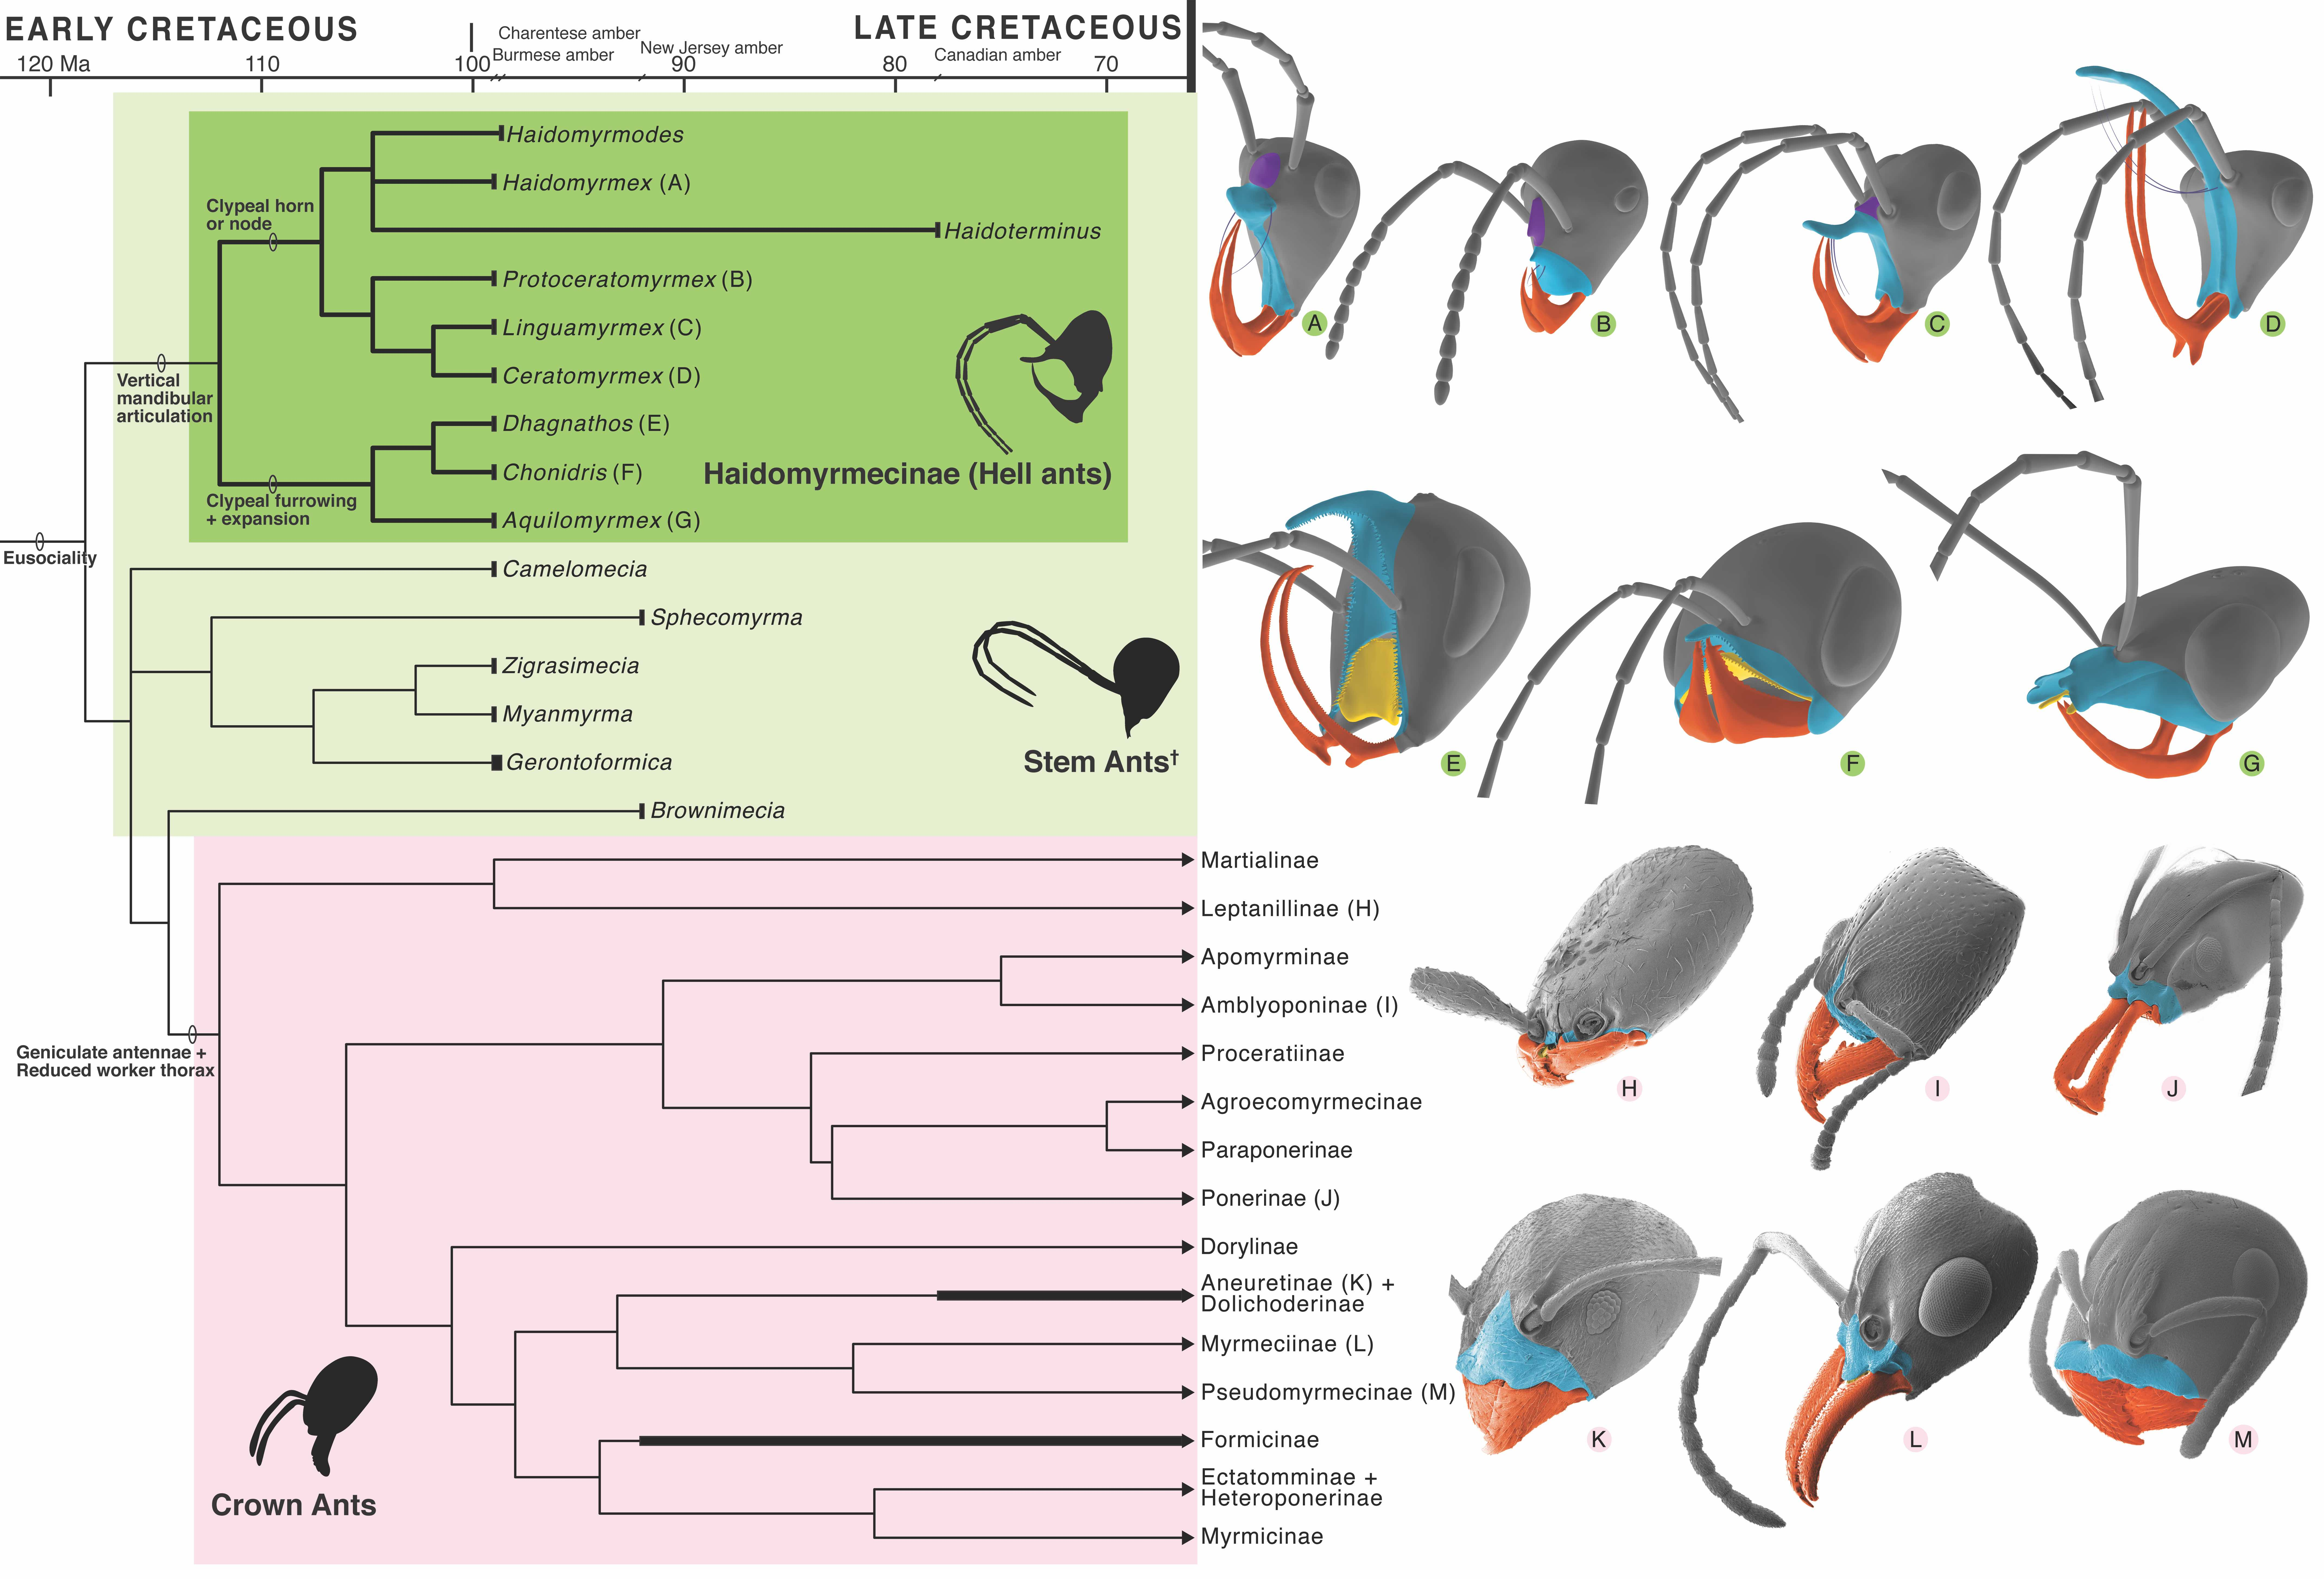 Driving Diversity of Hell Ants & Their Headgear